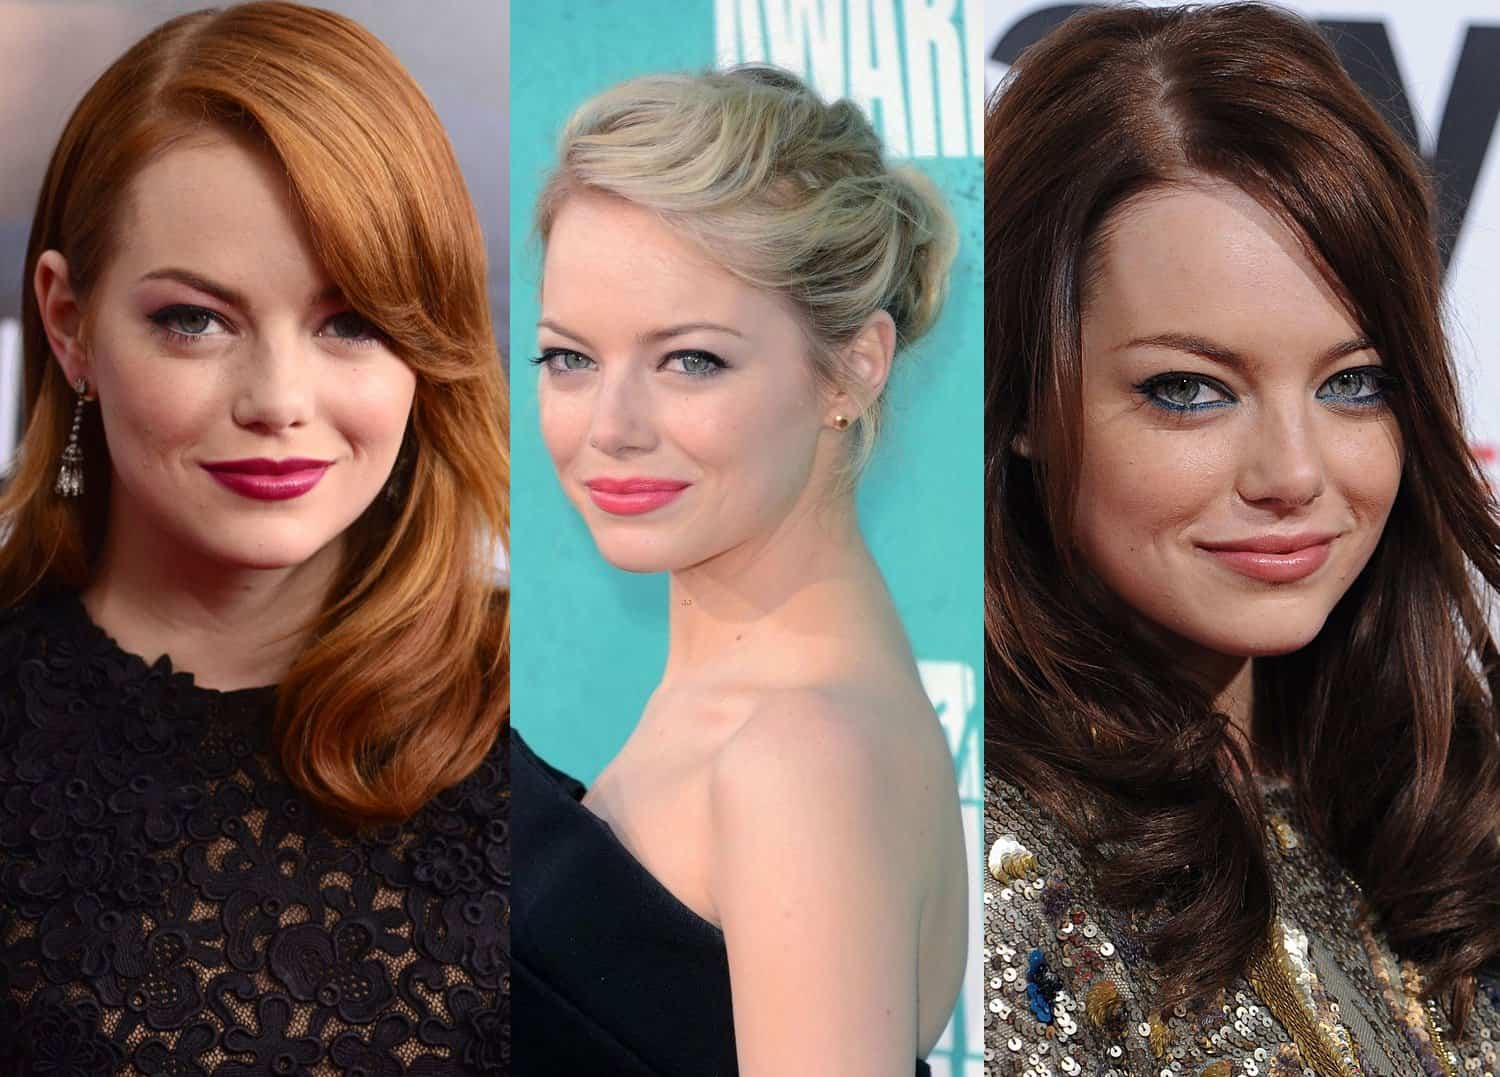 12 Female Celebrities Who Look Great With Any Hair Color